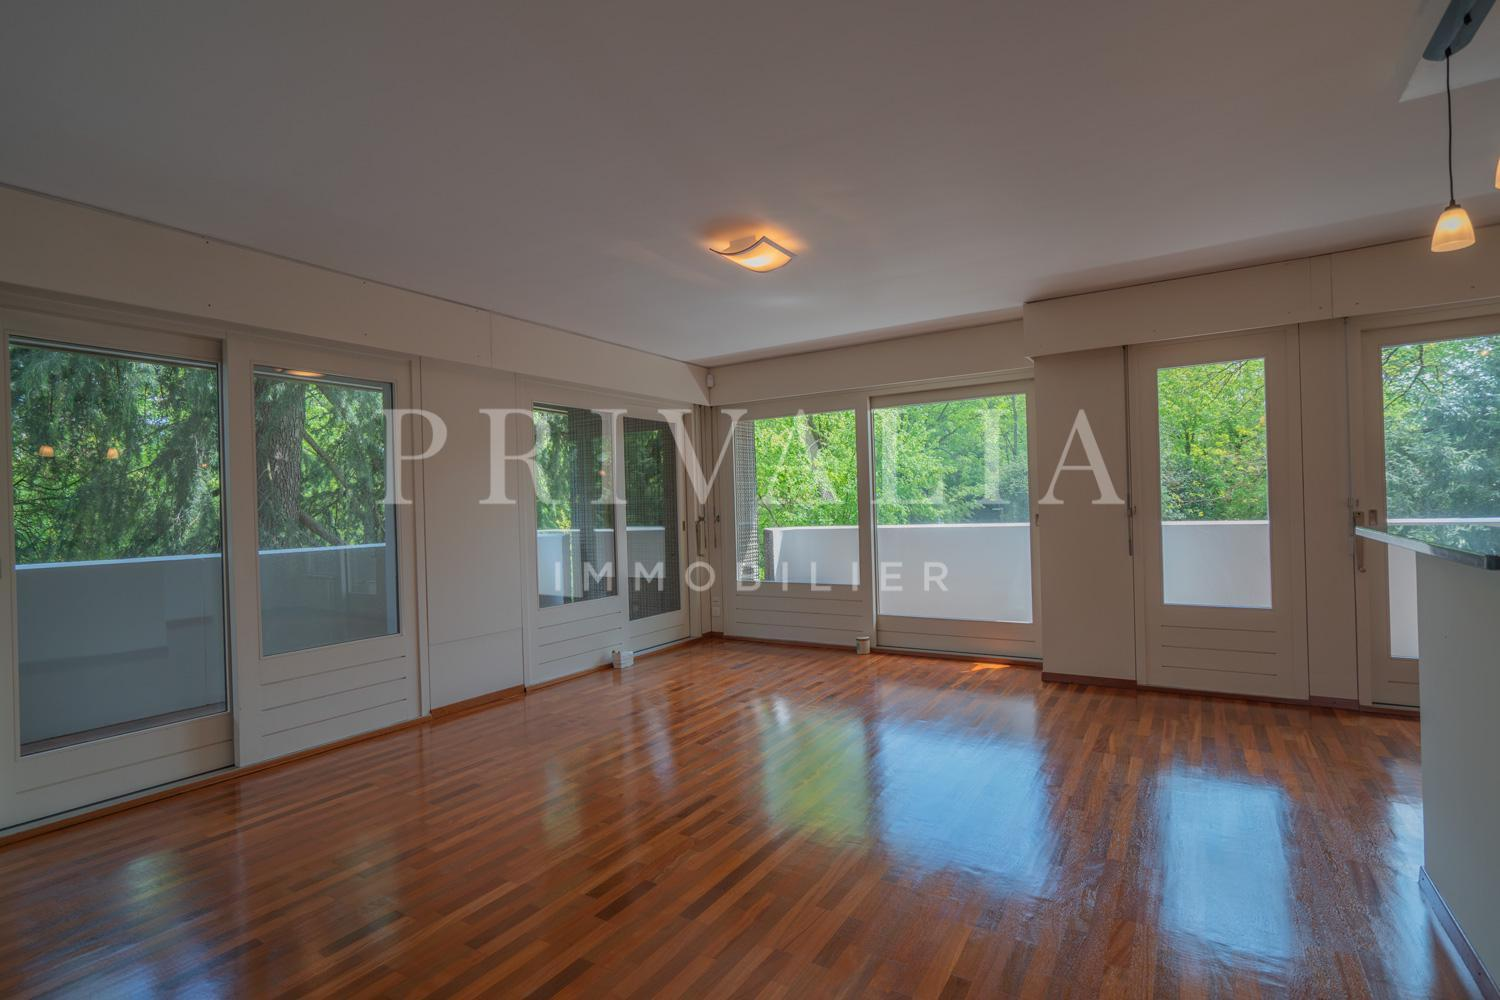 PrivaliaBeautiful apartment in the residence of Cologny Parc